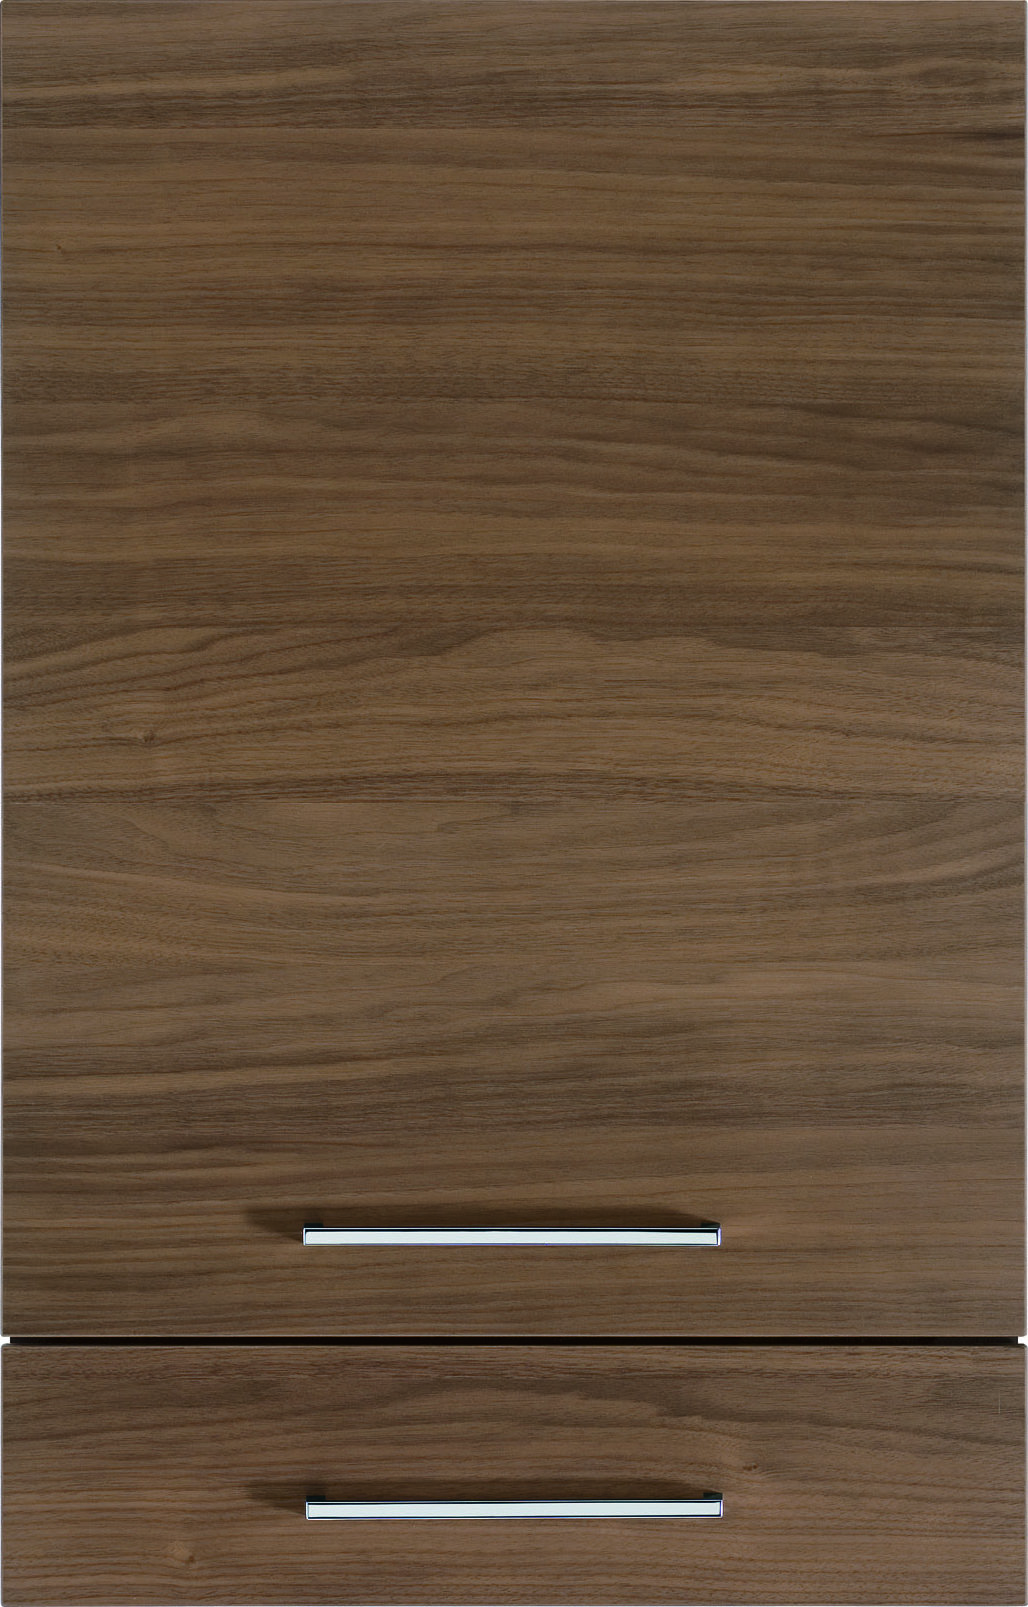 Walnut, Horizontal Wood Grain